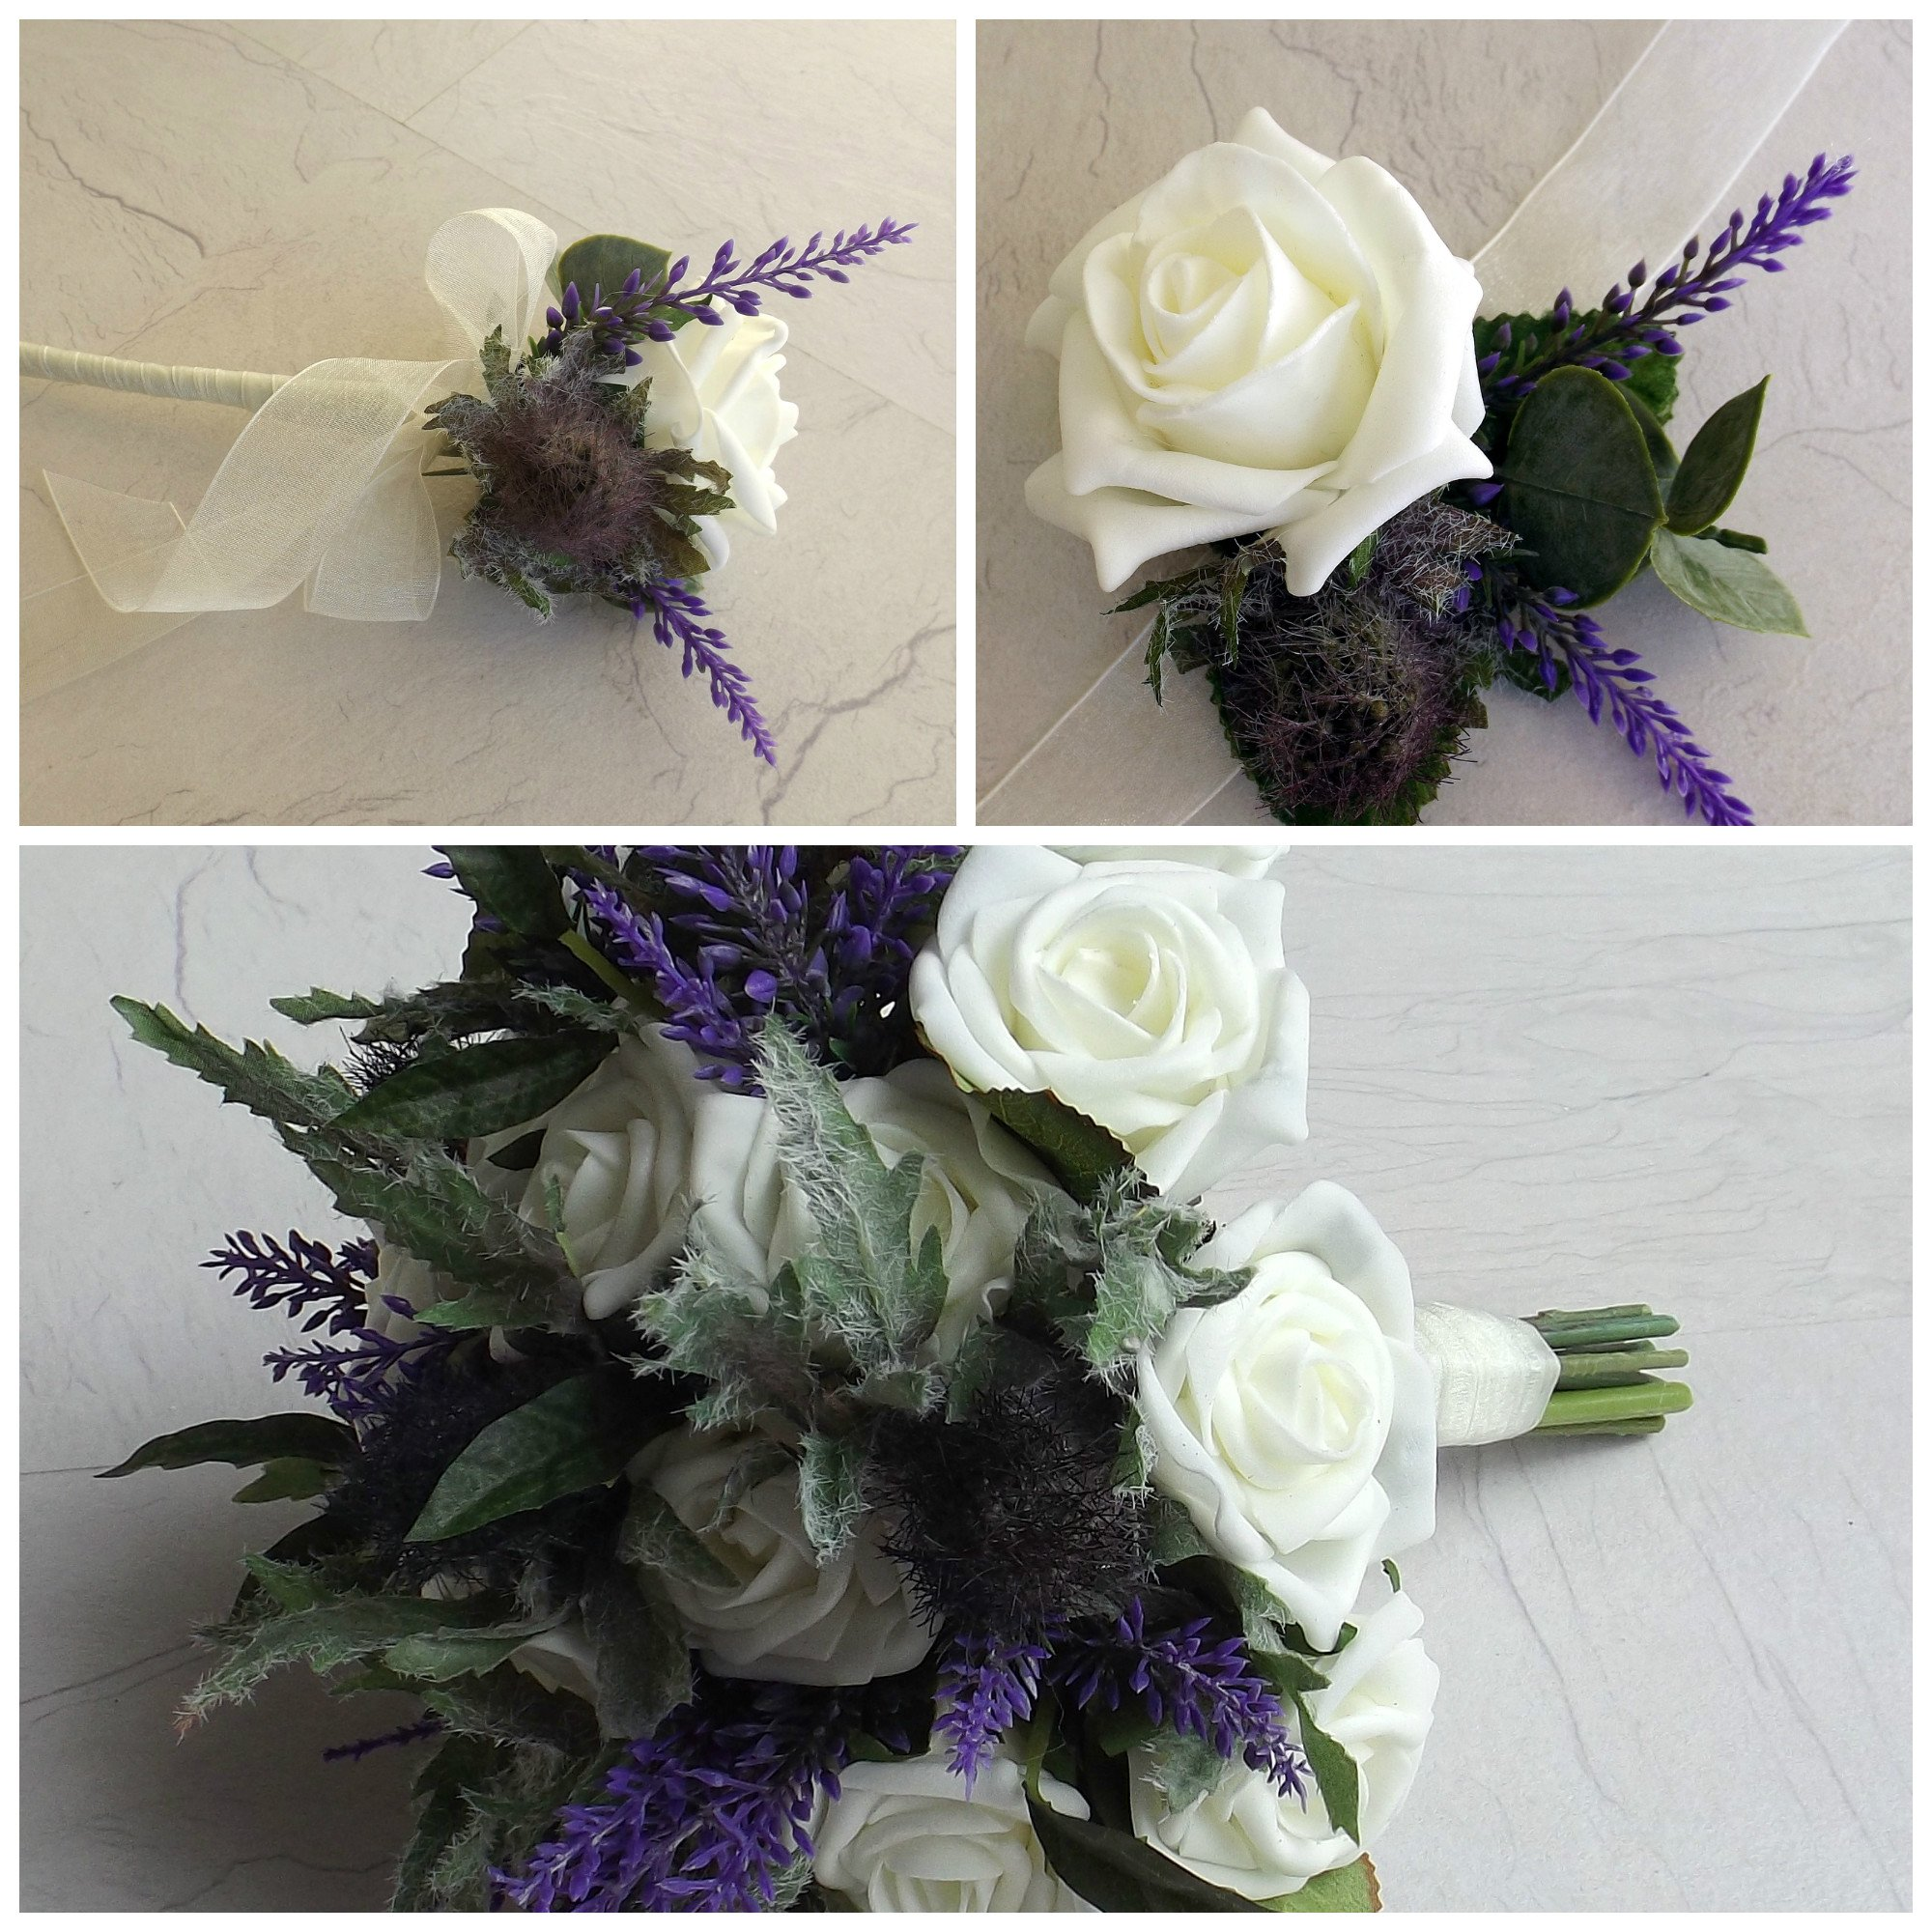 An artificial wedding flower package of thistle, heather and roses